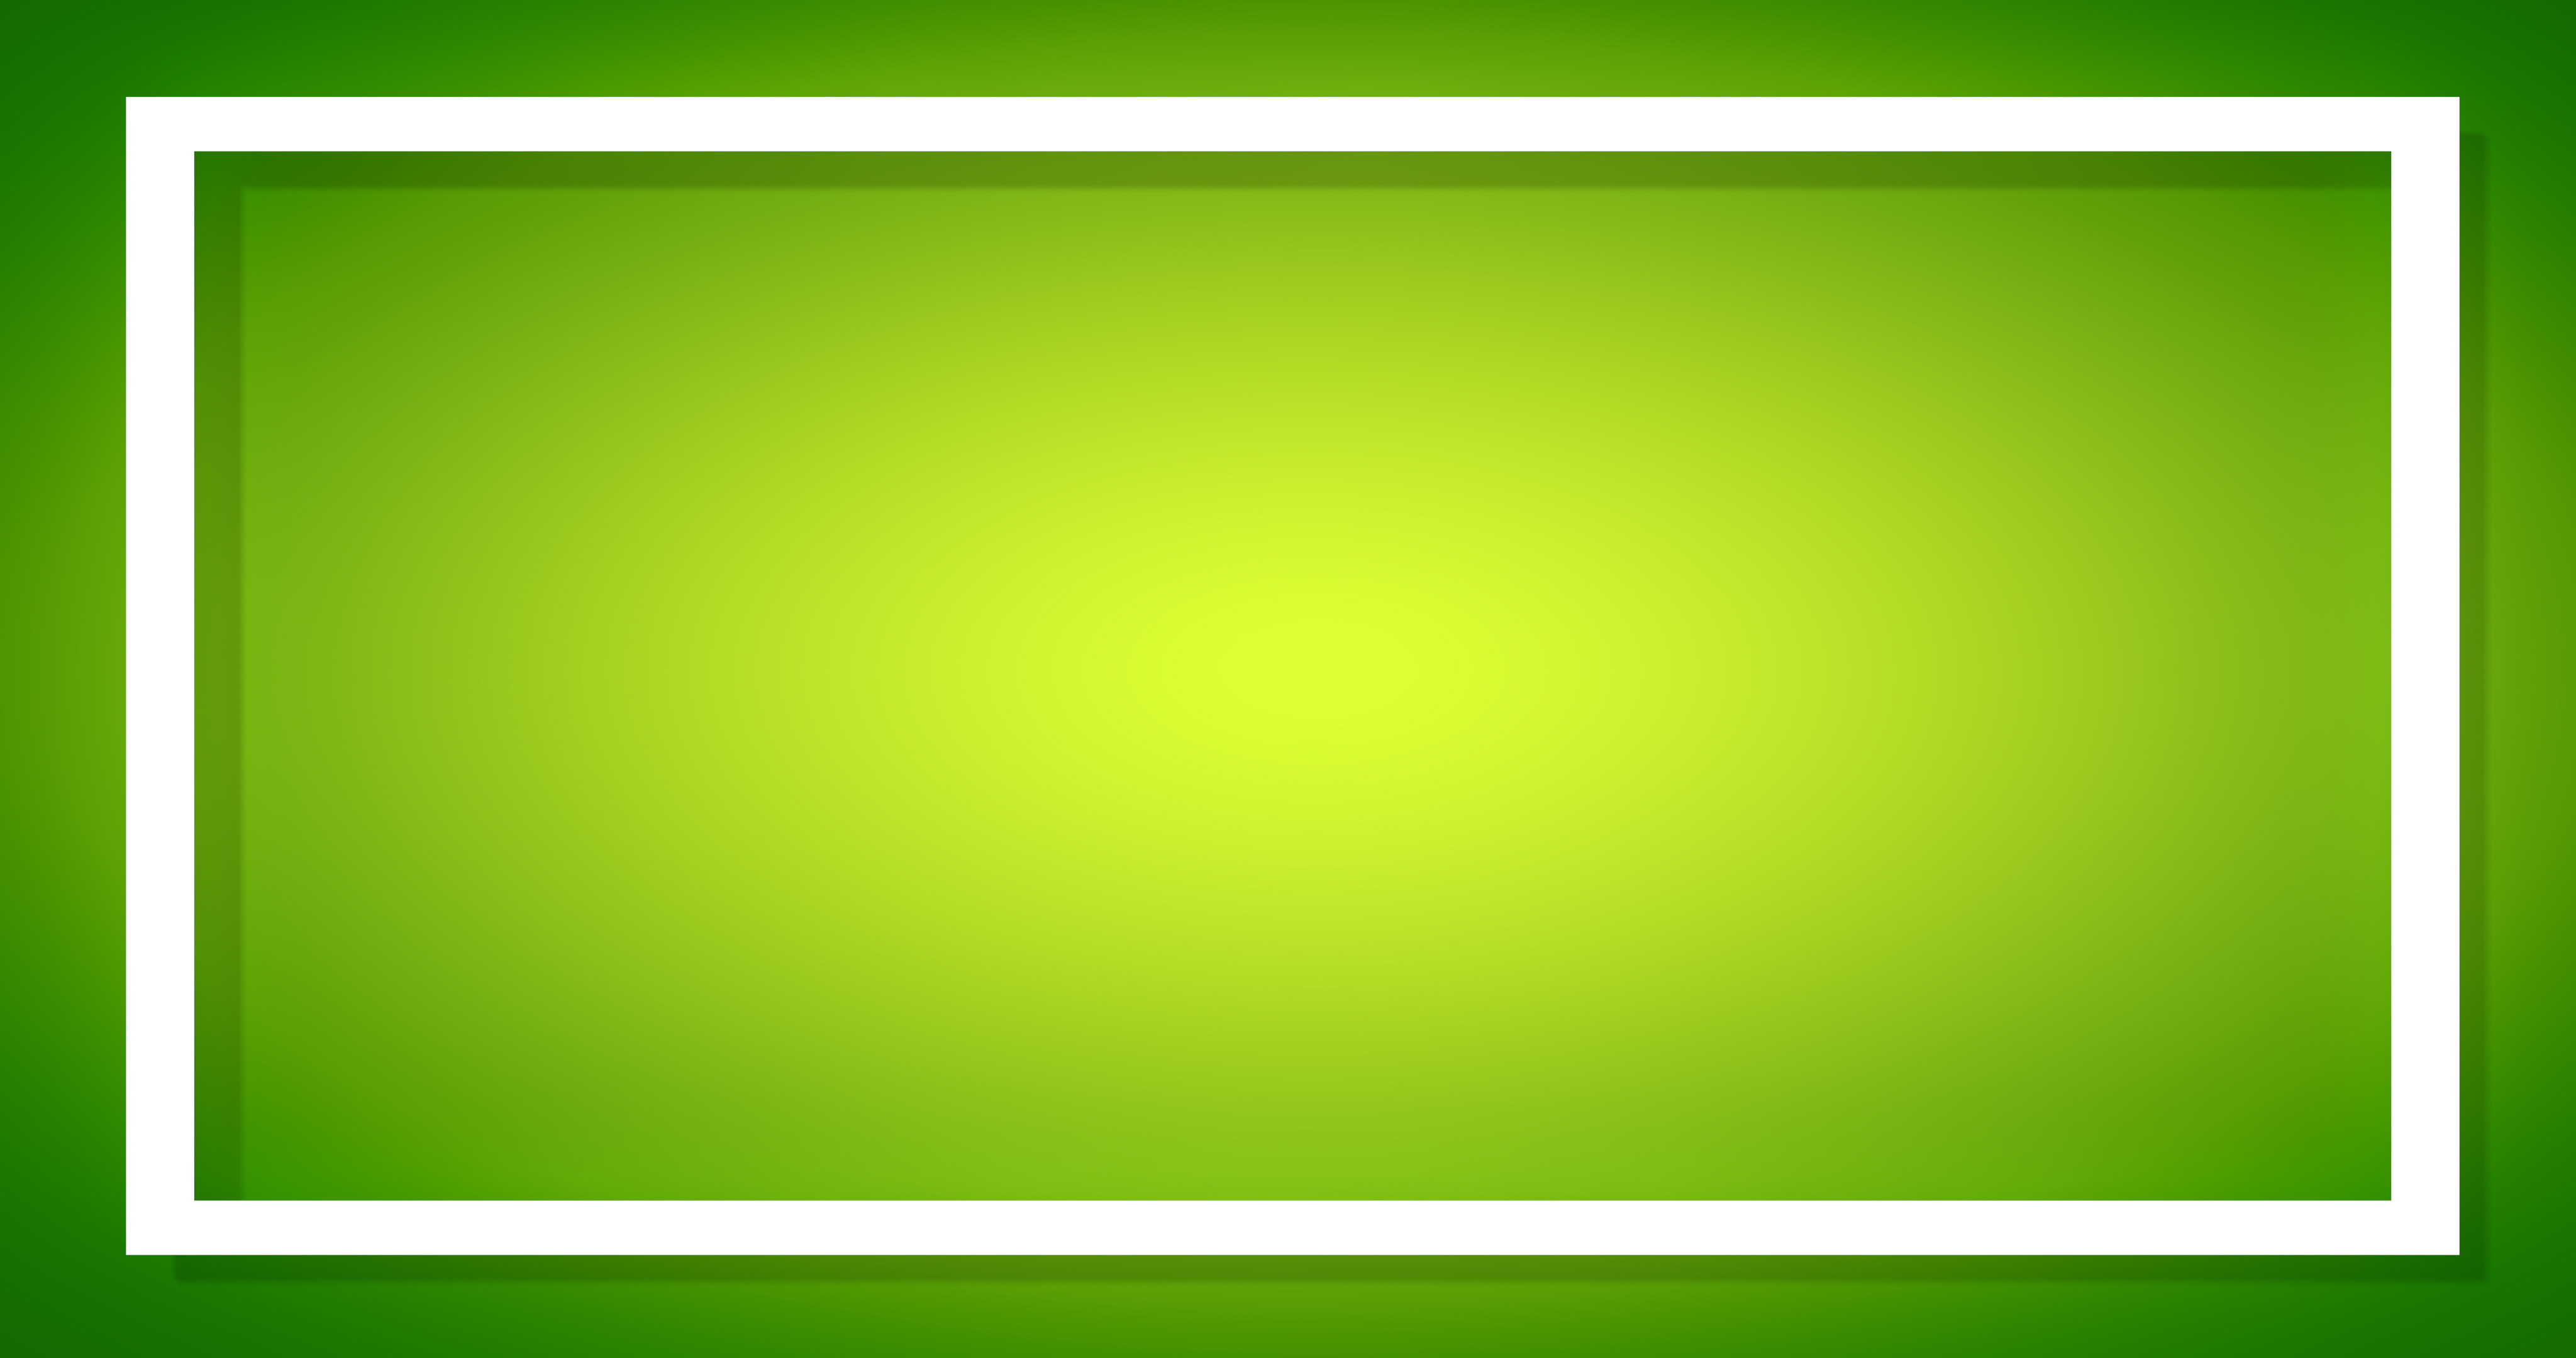 green and white backgrounds - photo #6